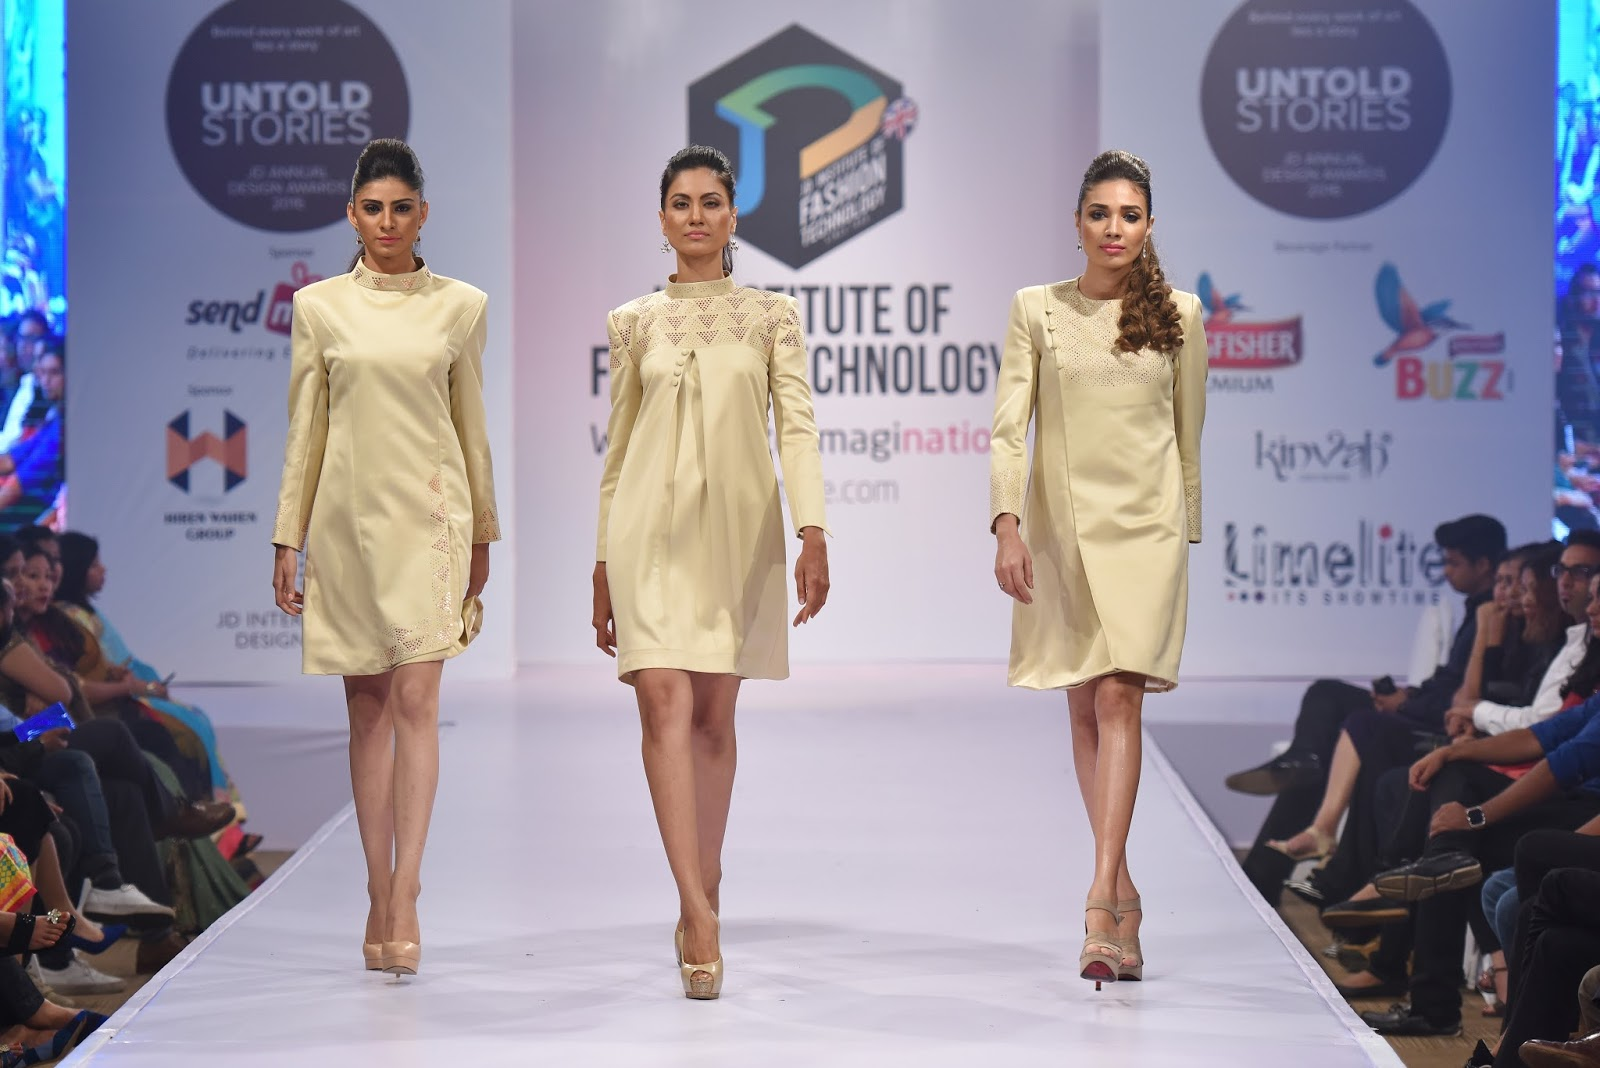 JD Institute Of Fashion Technology Annual Design Awards